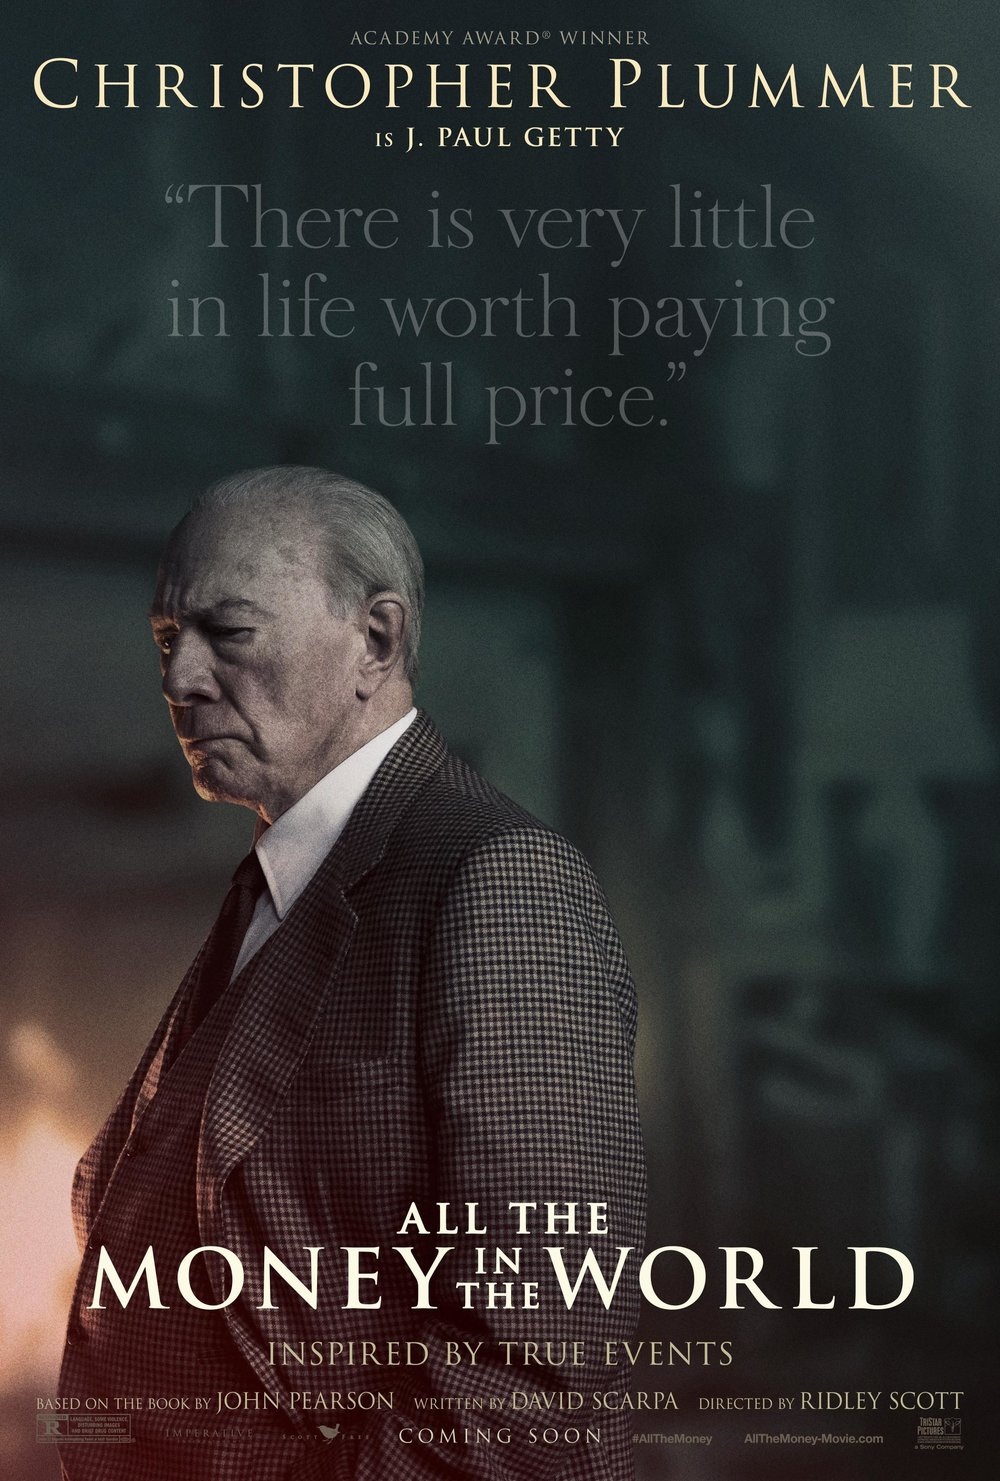 new-full-trailer-for-ridley-scotts-all-the-money-in-the-world-with-christopher-plummer-instead-of-kevin-spacey1